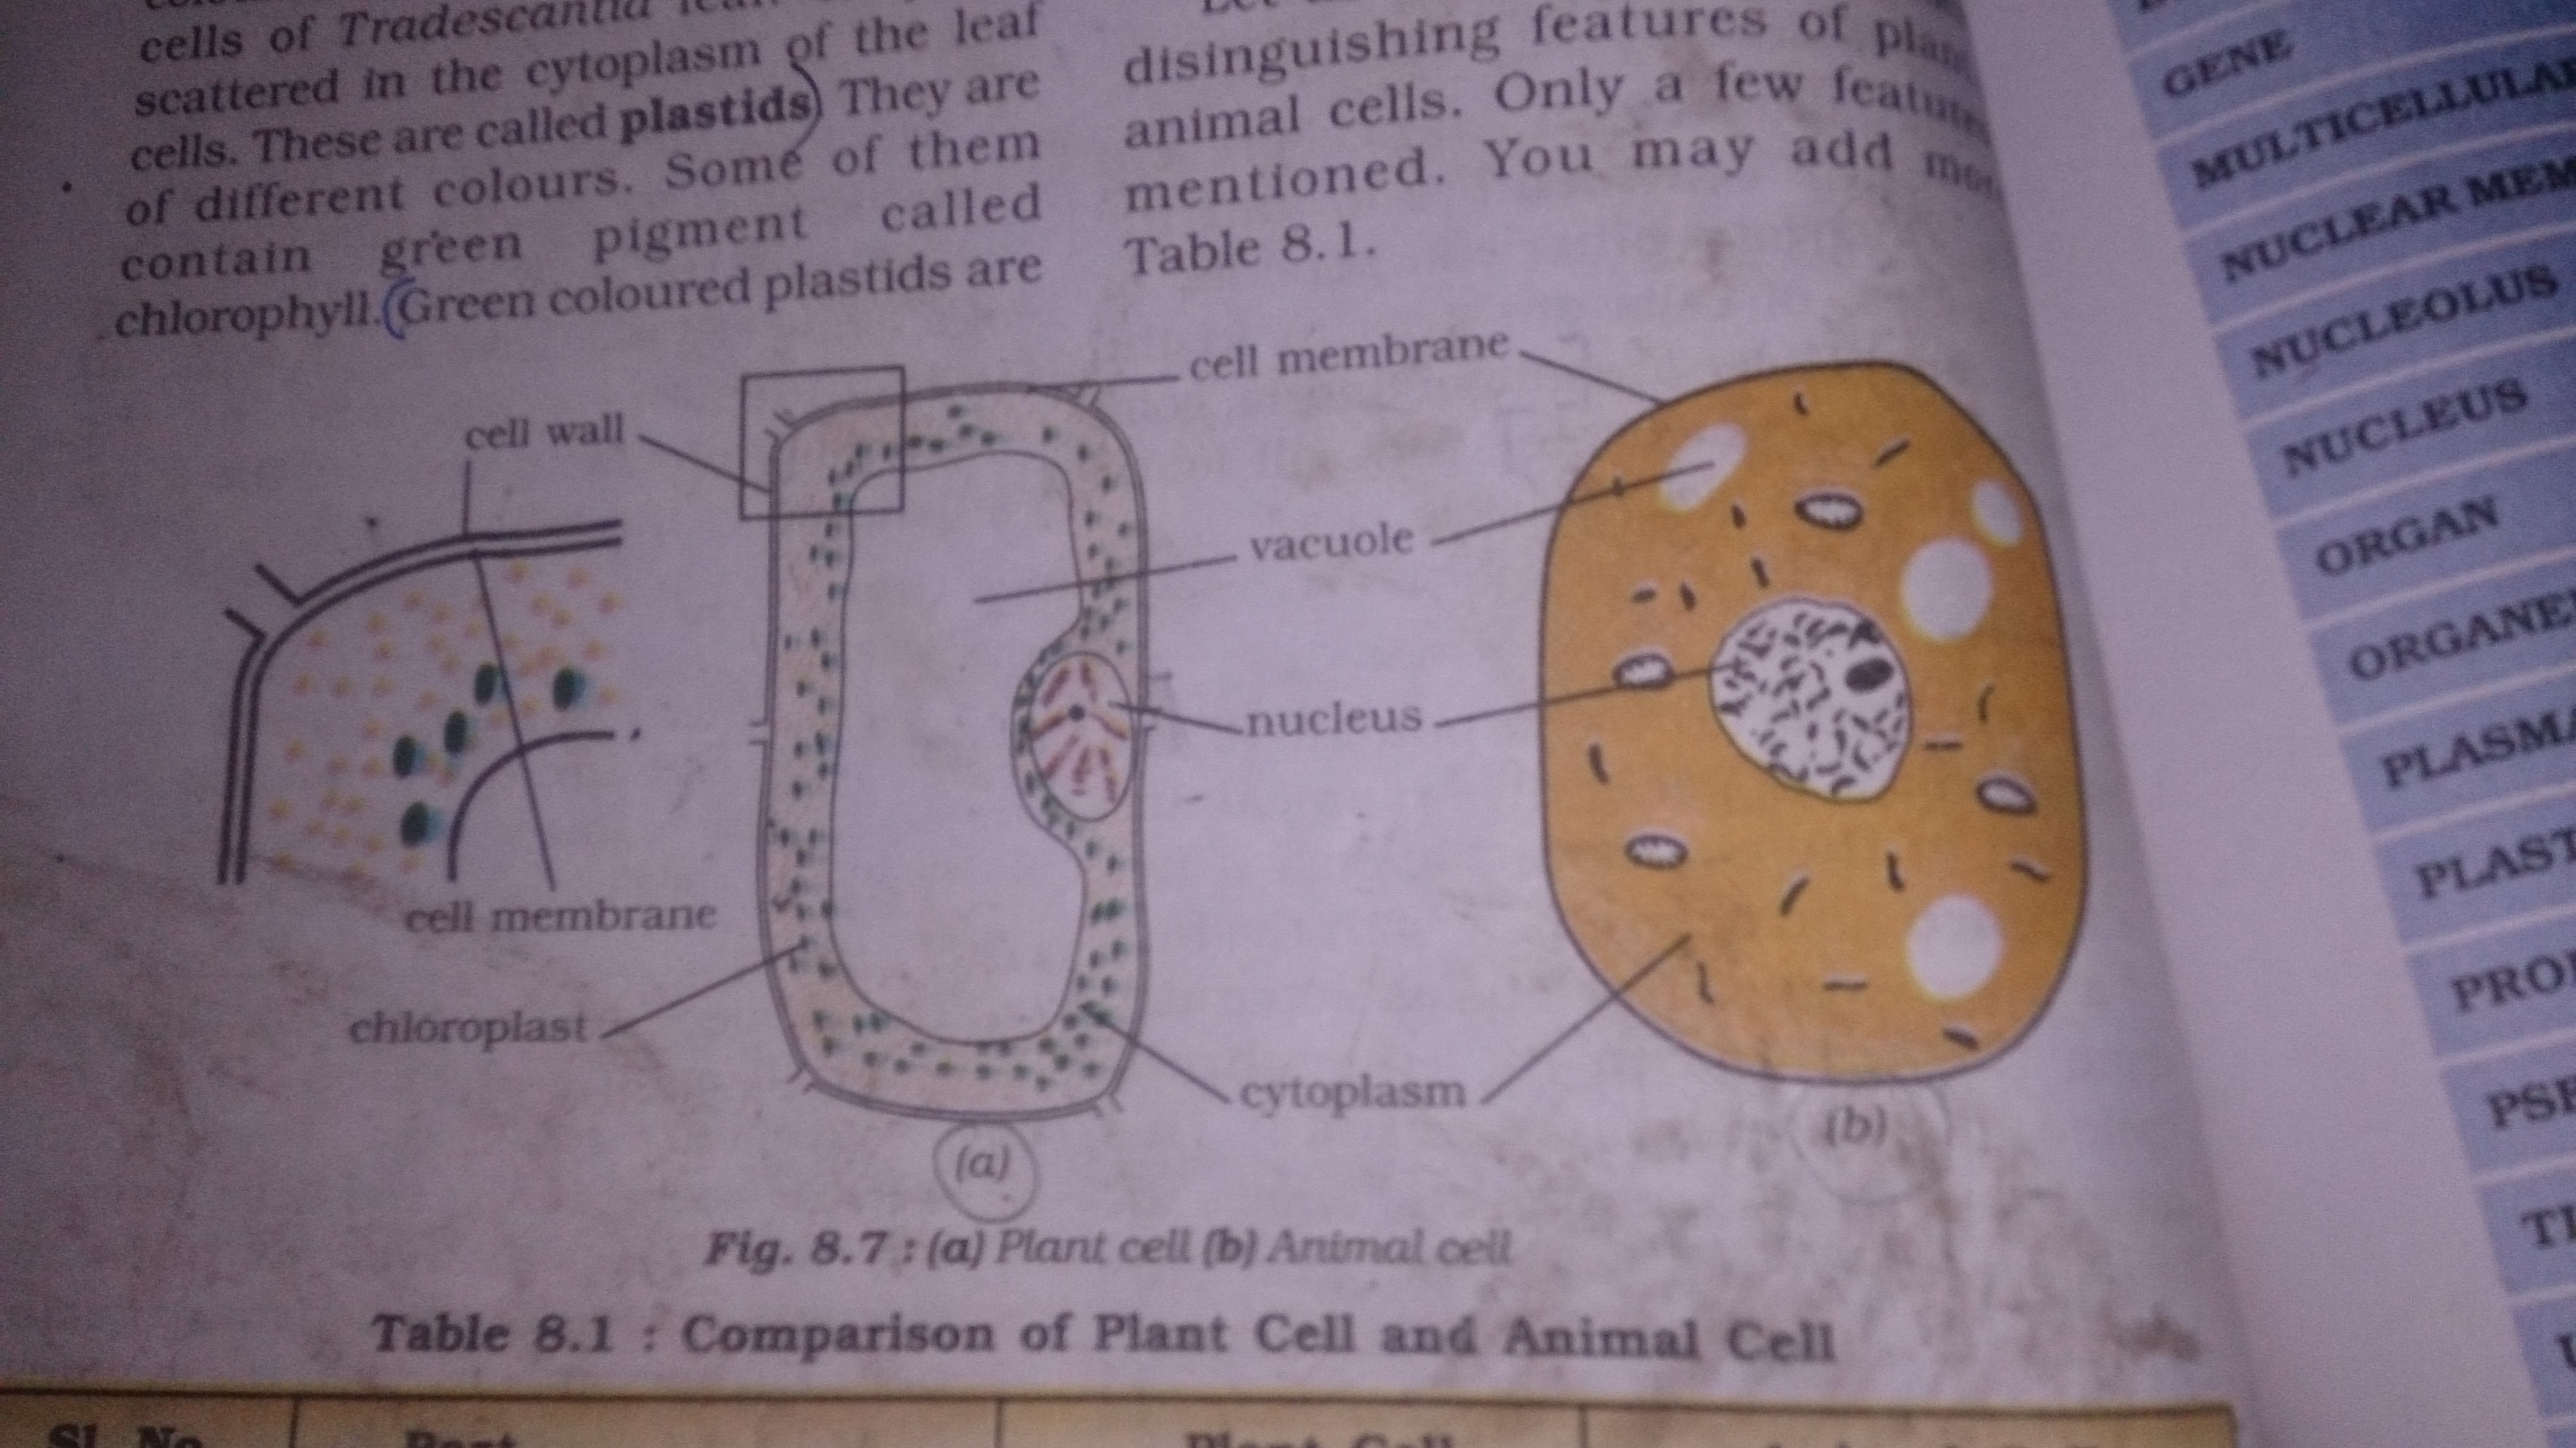 Could yu give a well labelled diagram of plant cell,animal ...